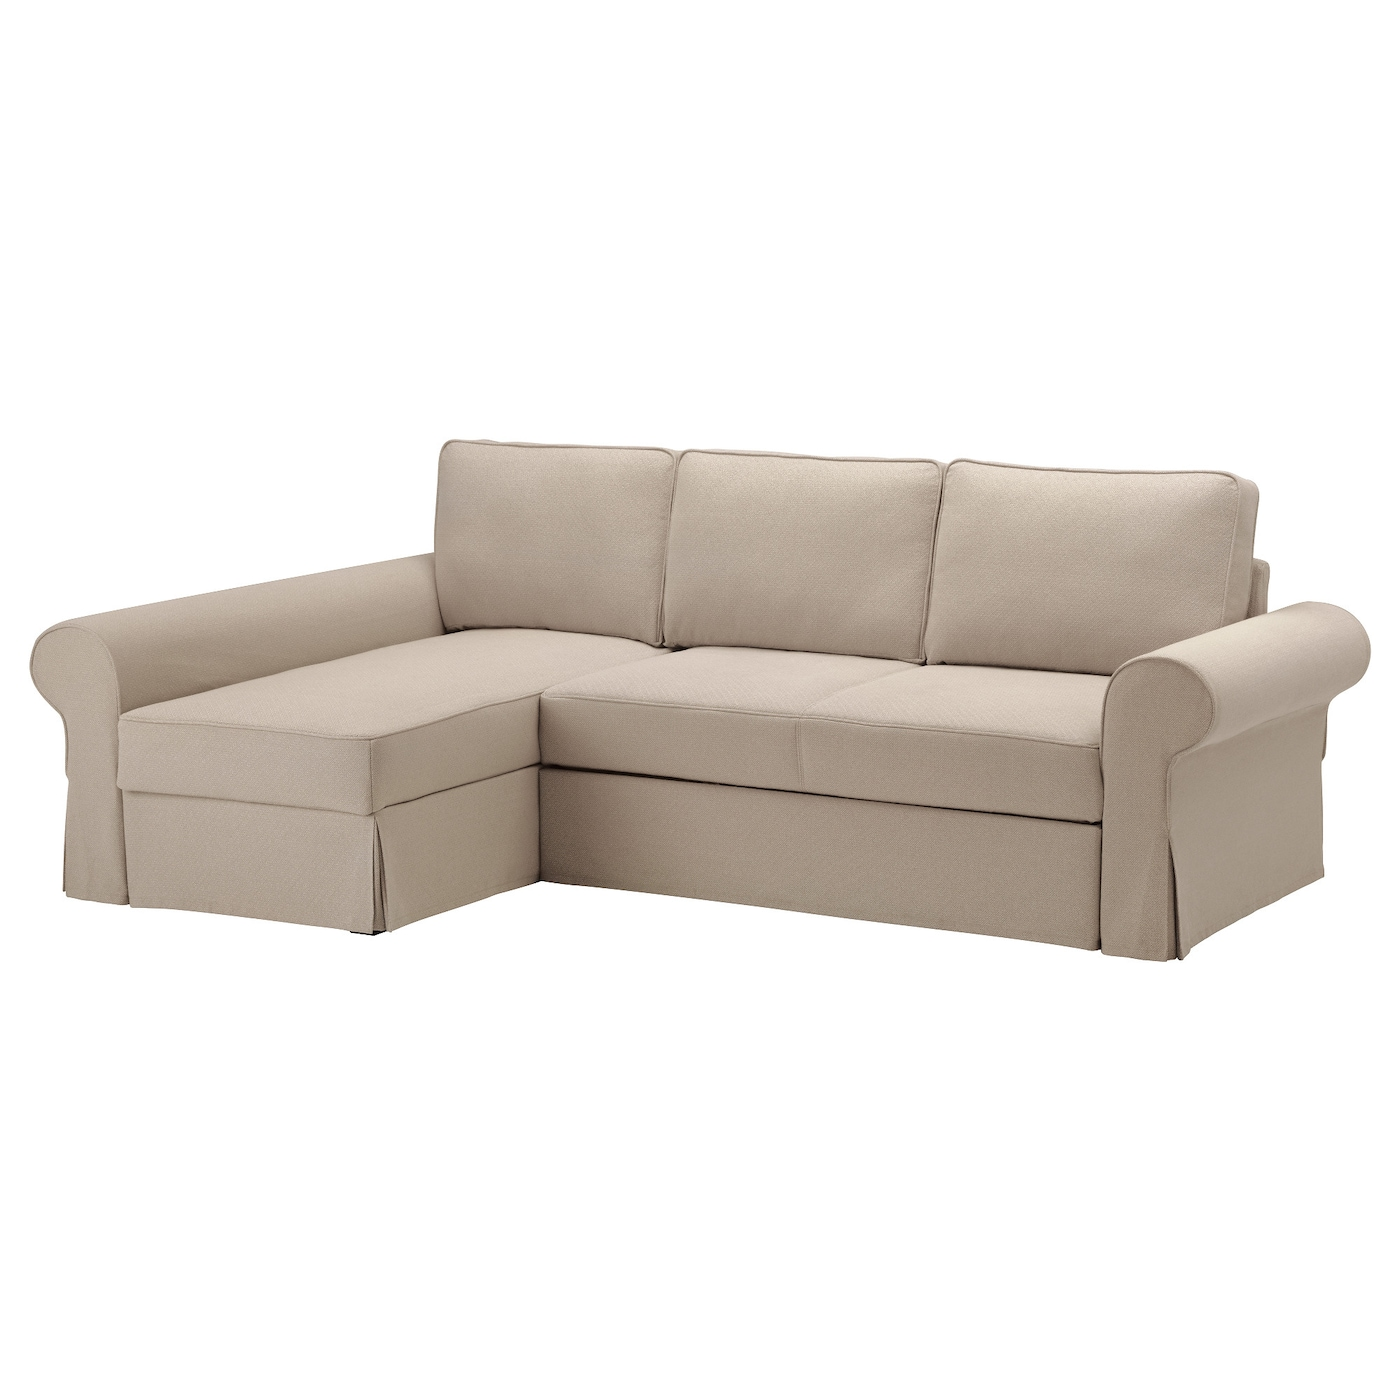 Backabro sofa bed with chaise longue hylte beige ikea for Sofas con chaise longue